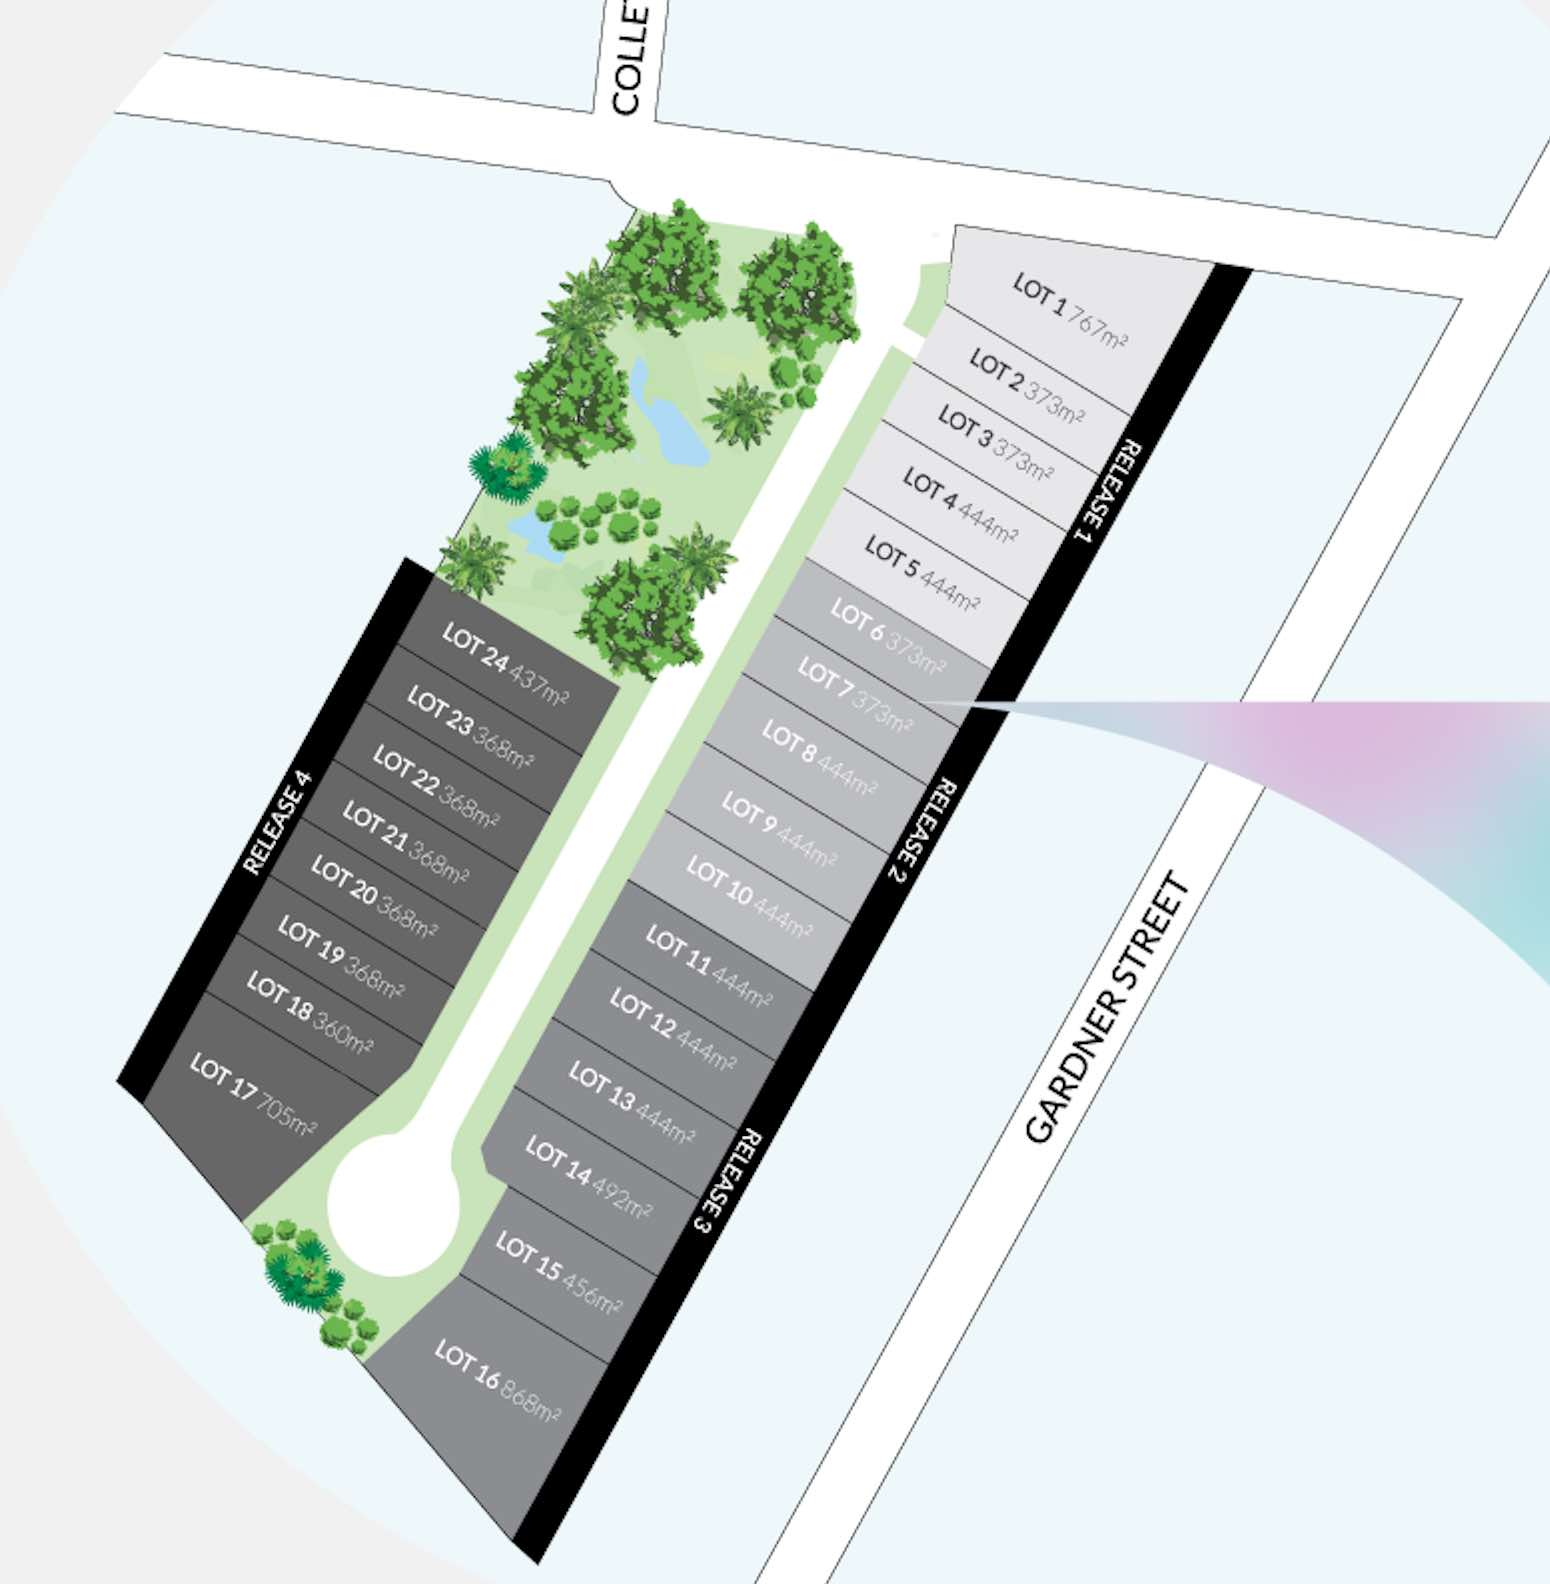 Serenity Court Estate - Longwarry Masterplan